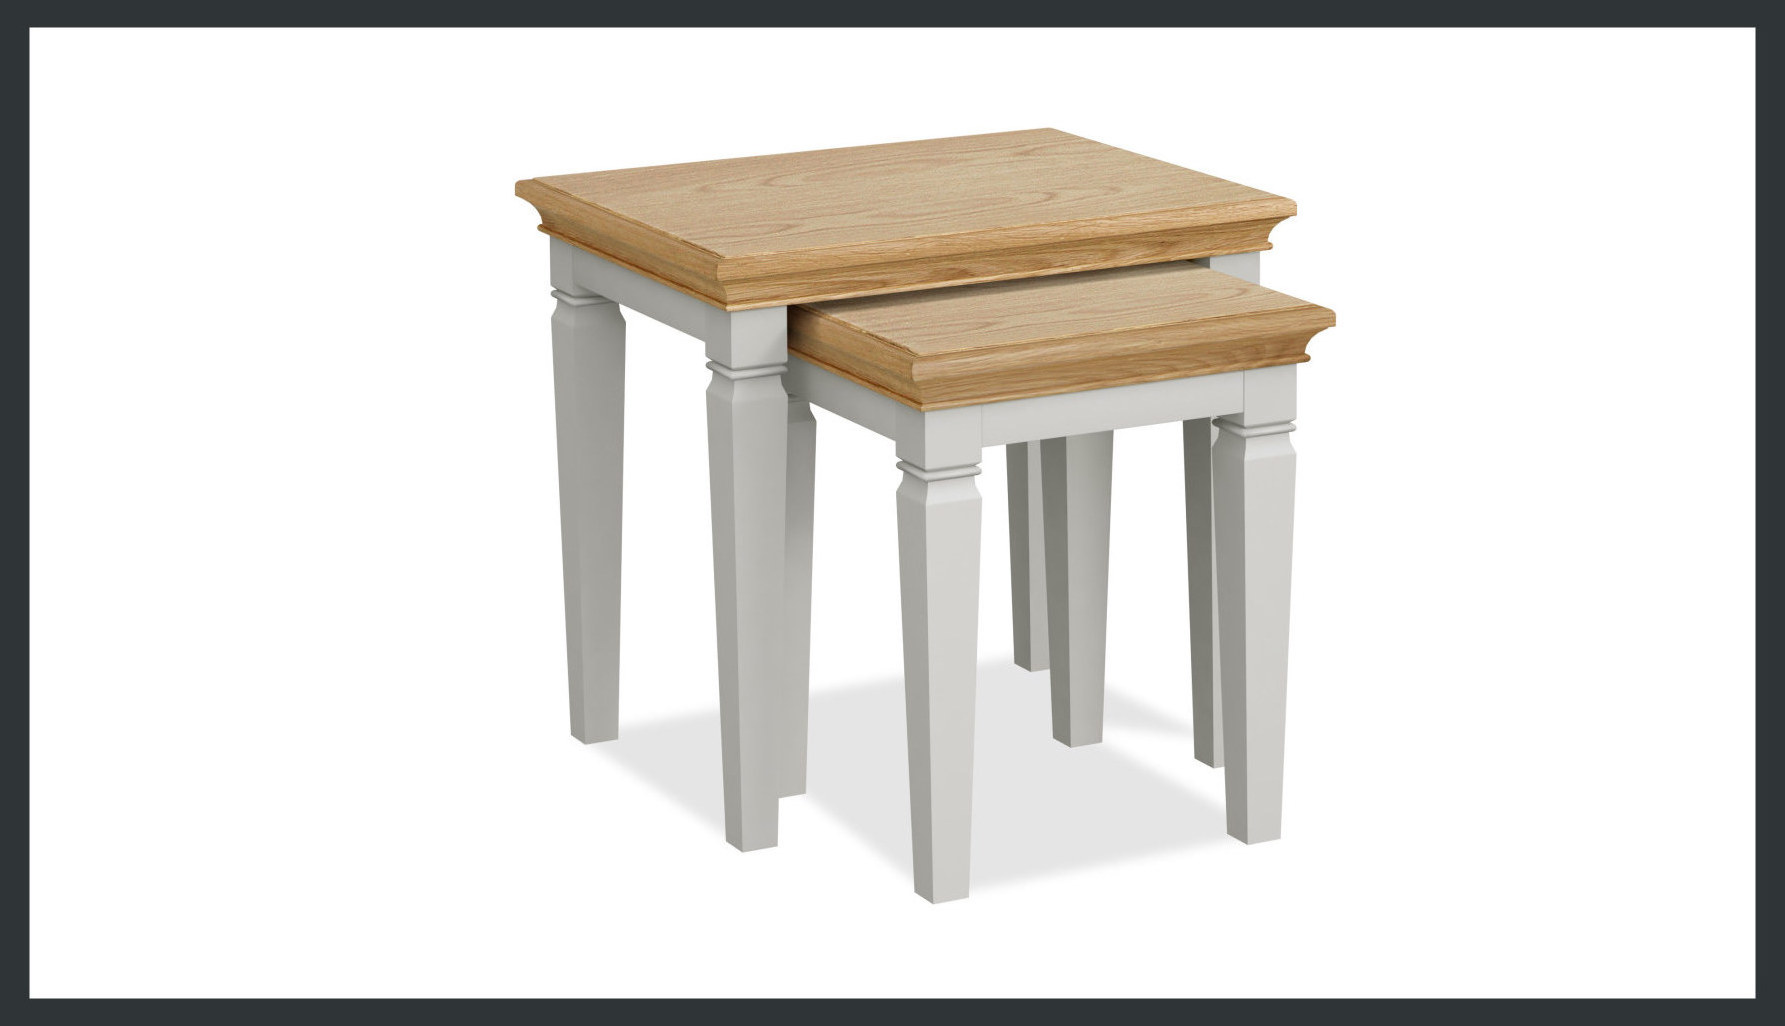 Rustique Home Florence Painted and Natural 100% Solid Oak coffee table. A pair of stackable tables that nest in to each other. Two colors, mainly the legs are painted satin grey and the top is natural oak color.